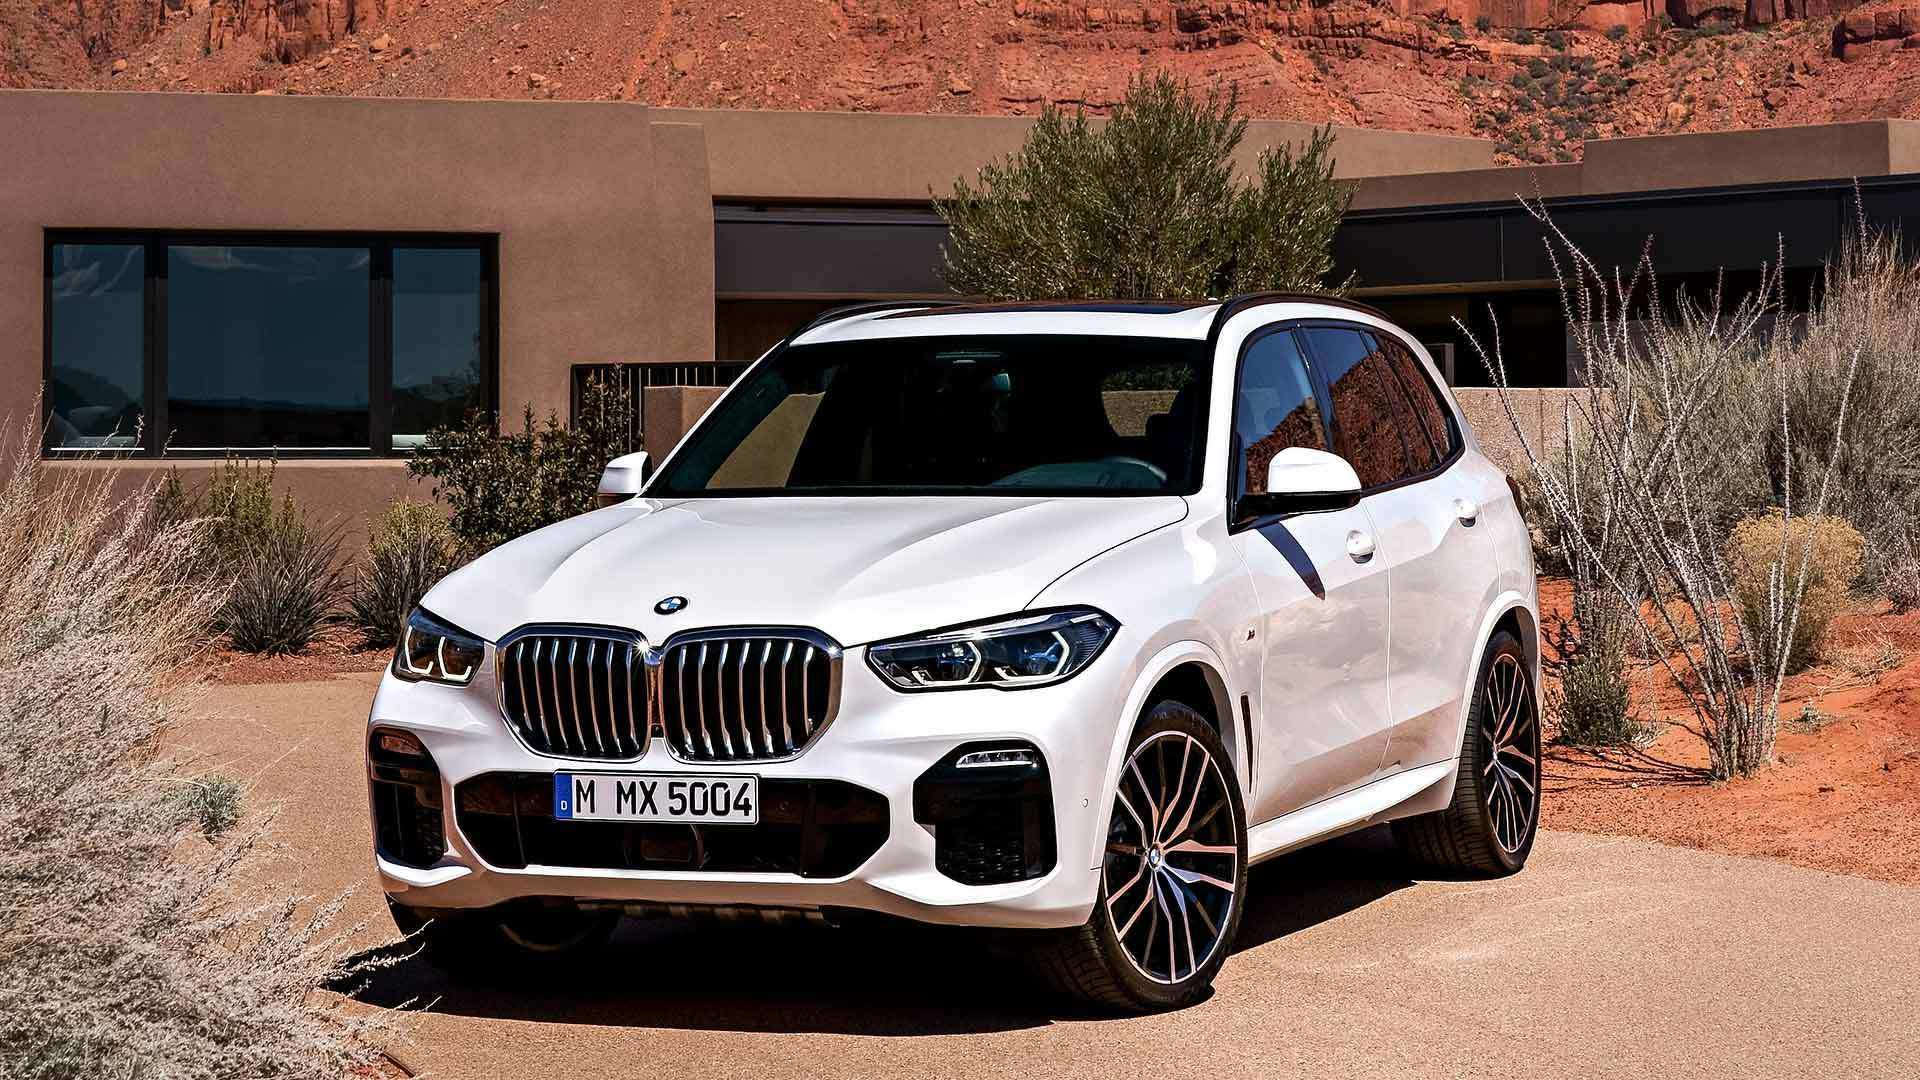 77 Best Review 2019 Bmw 5500 Hd Model for 2019 Bmw 5500 Hd